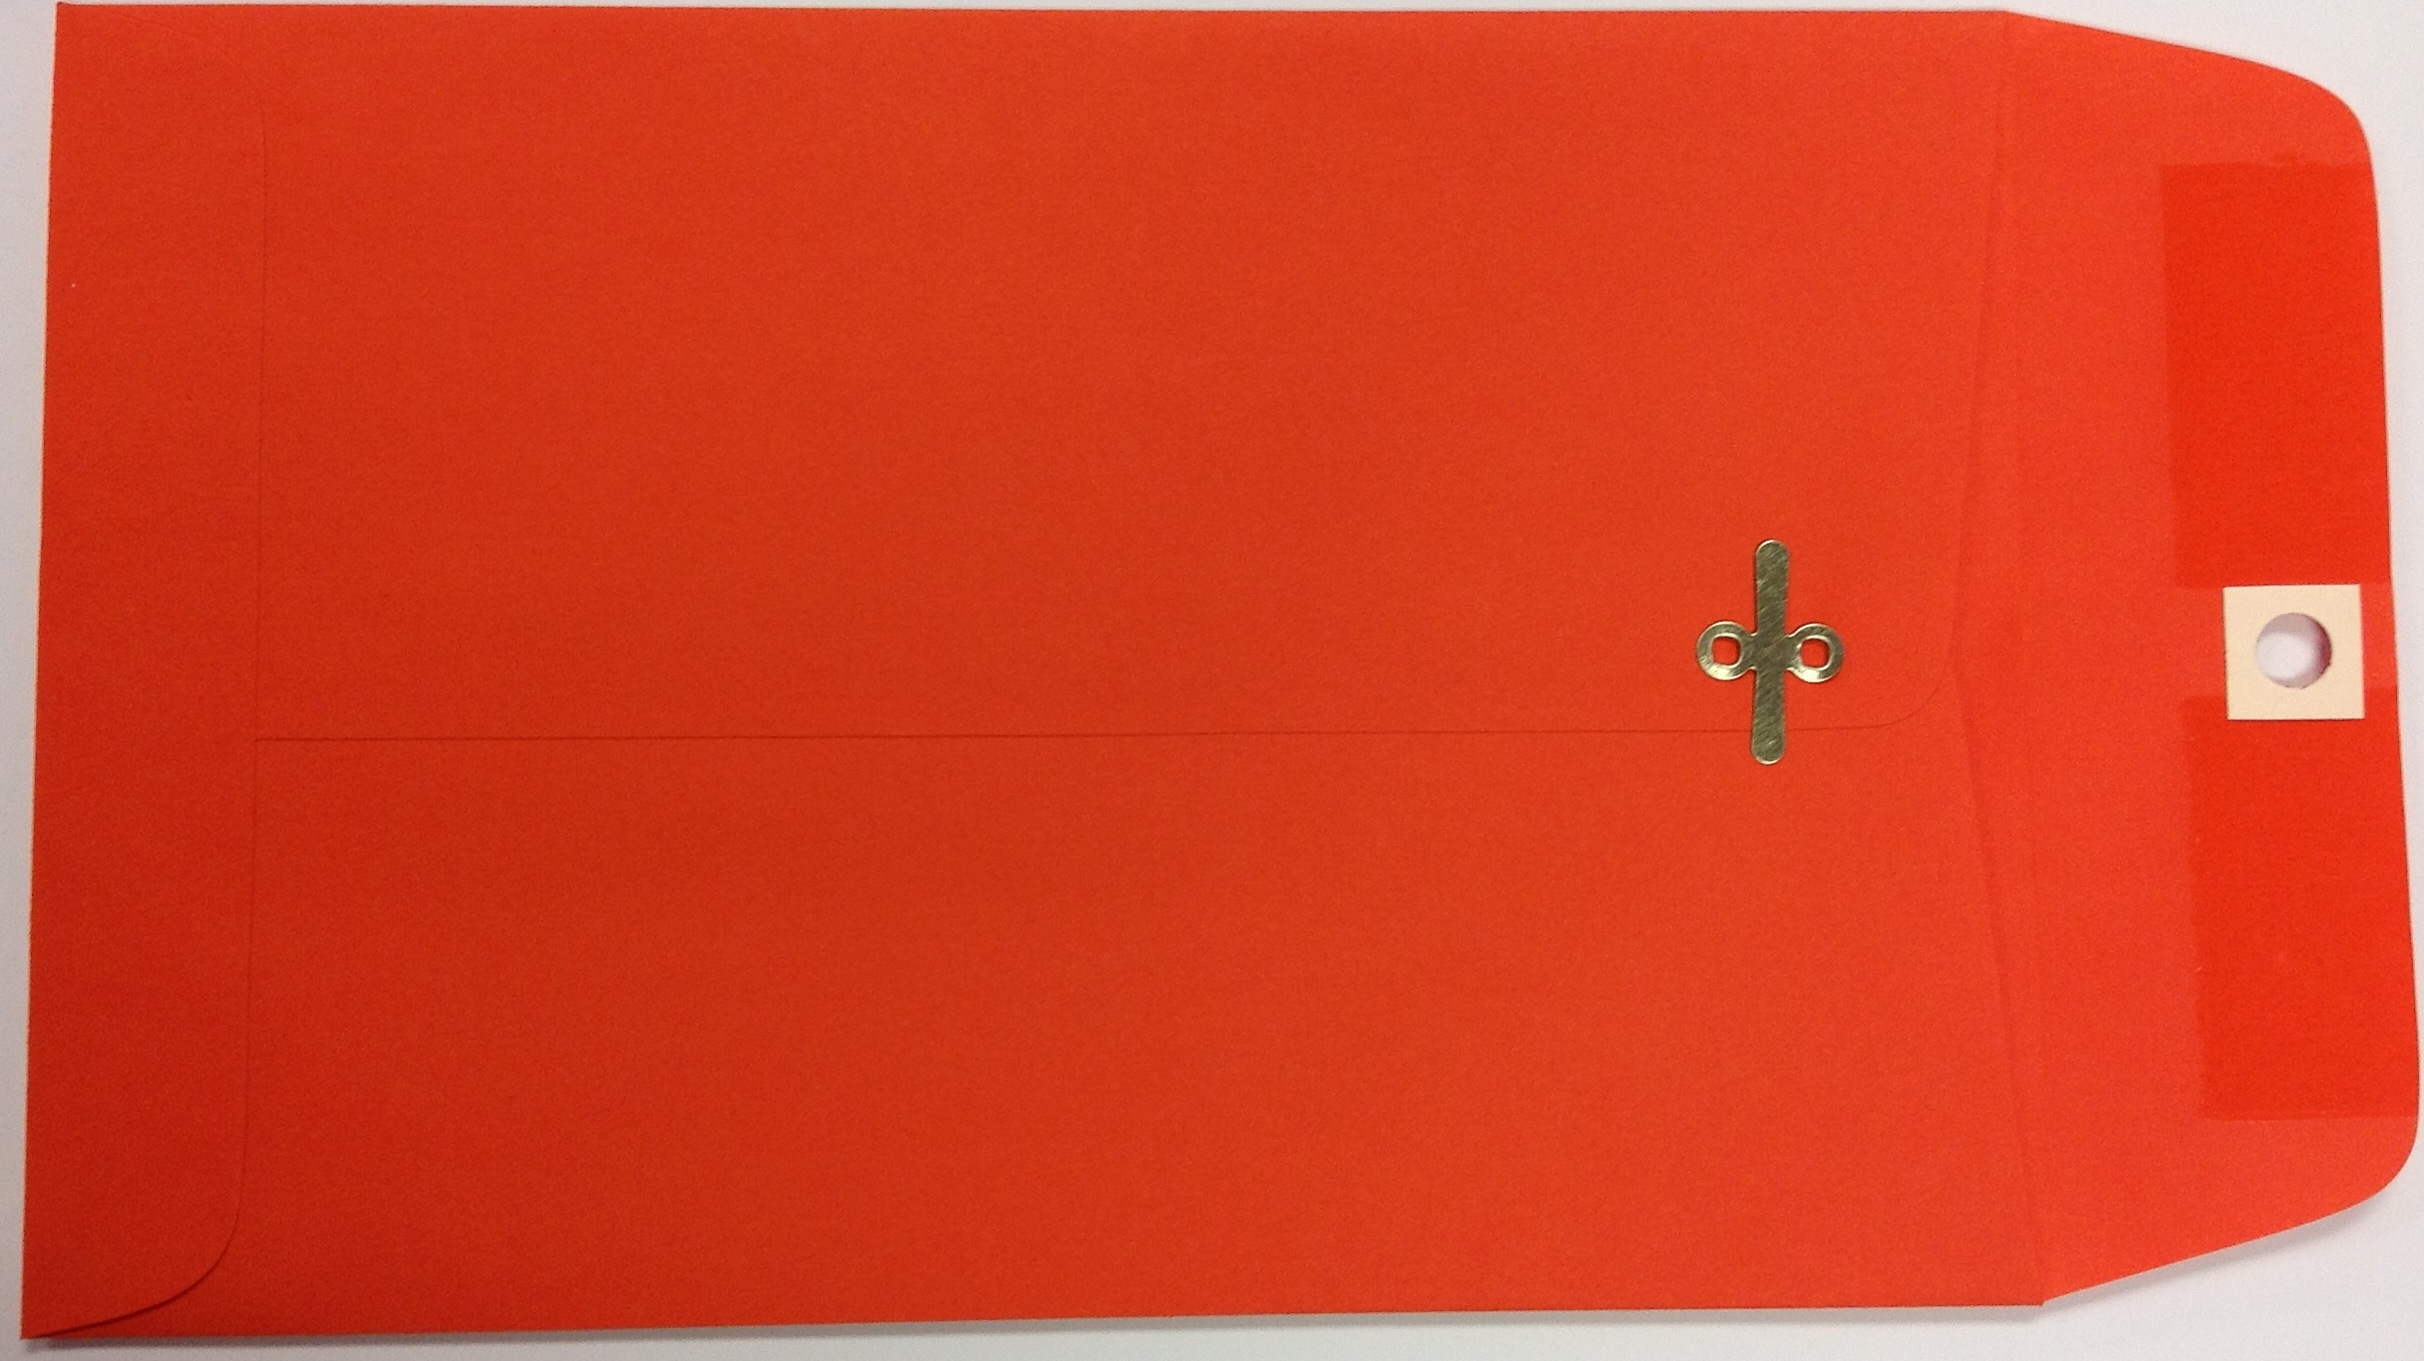 6X9 CLASP ENVELOPES ORANGE 10s